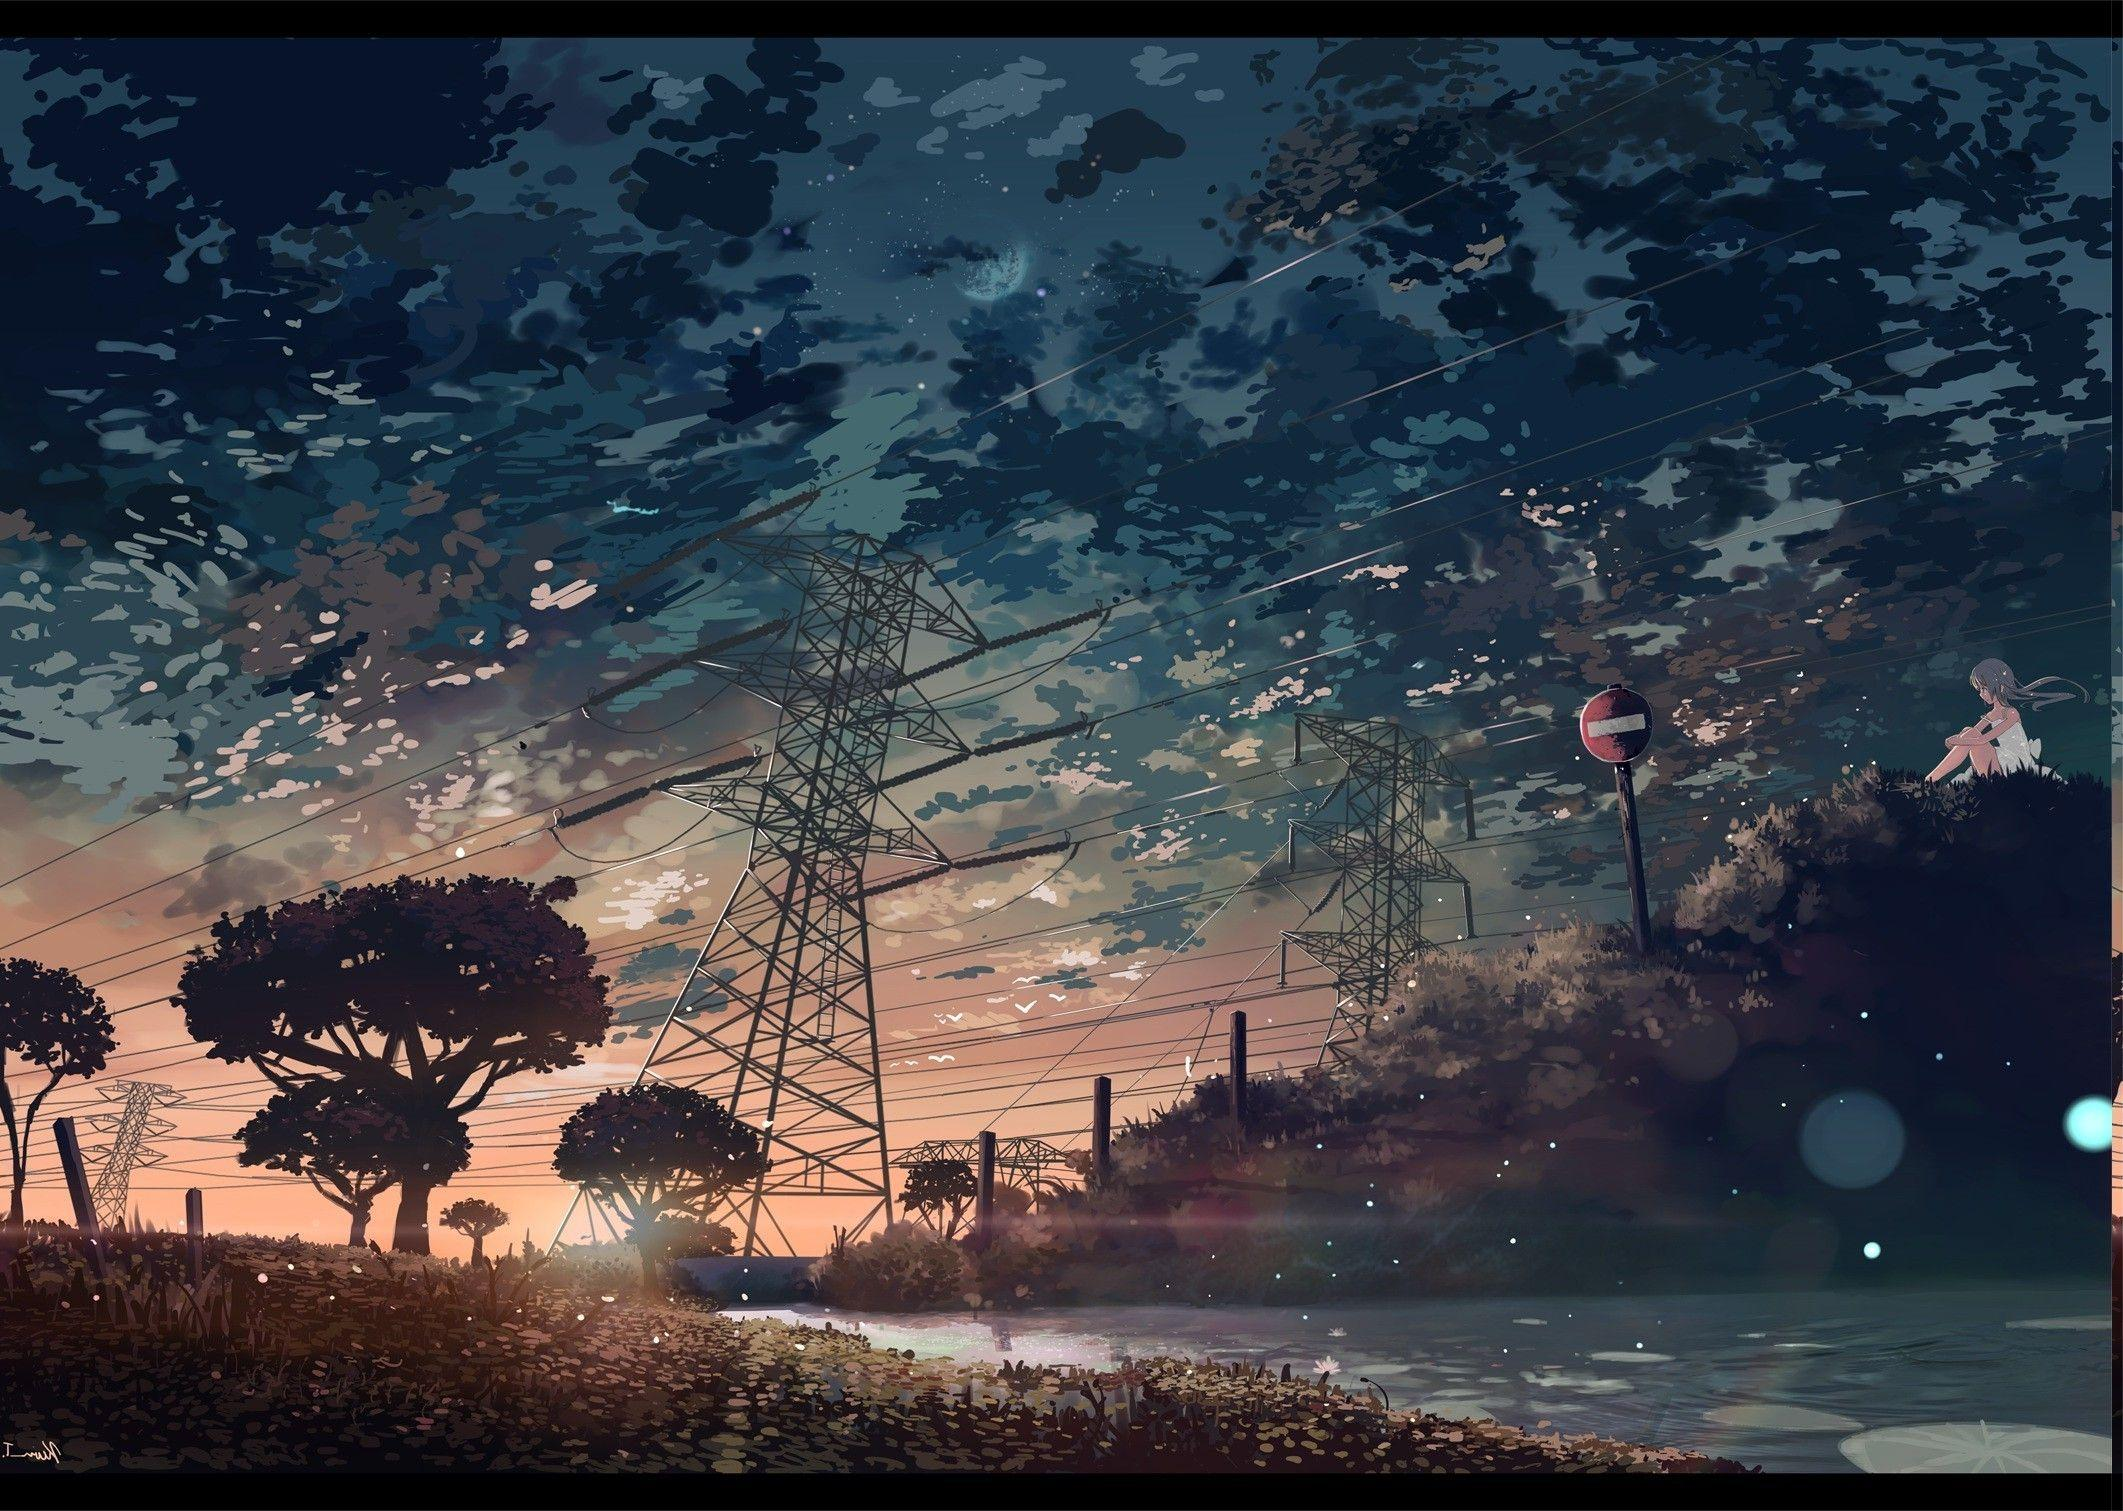 Anime Aesthetic Backgrounds